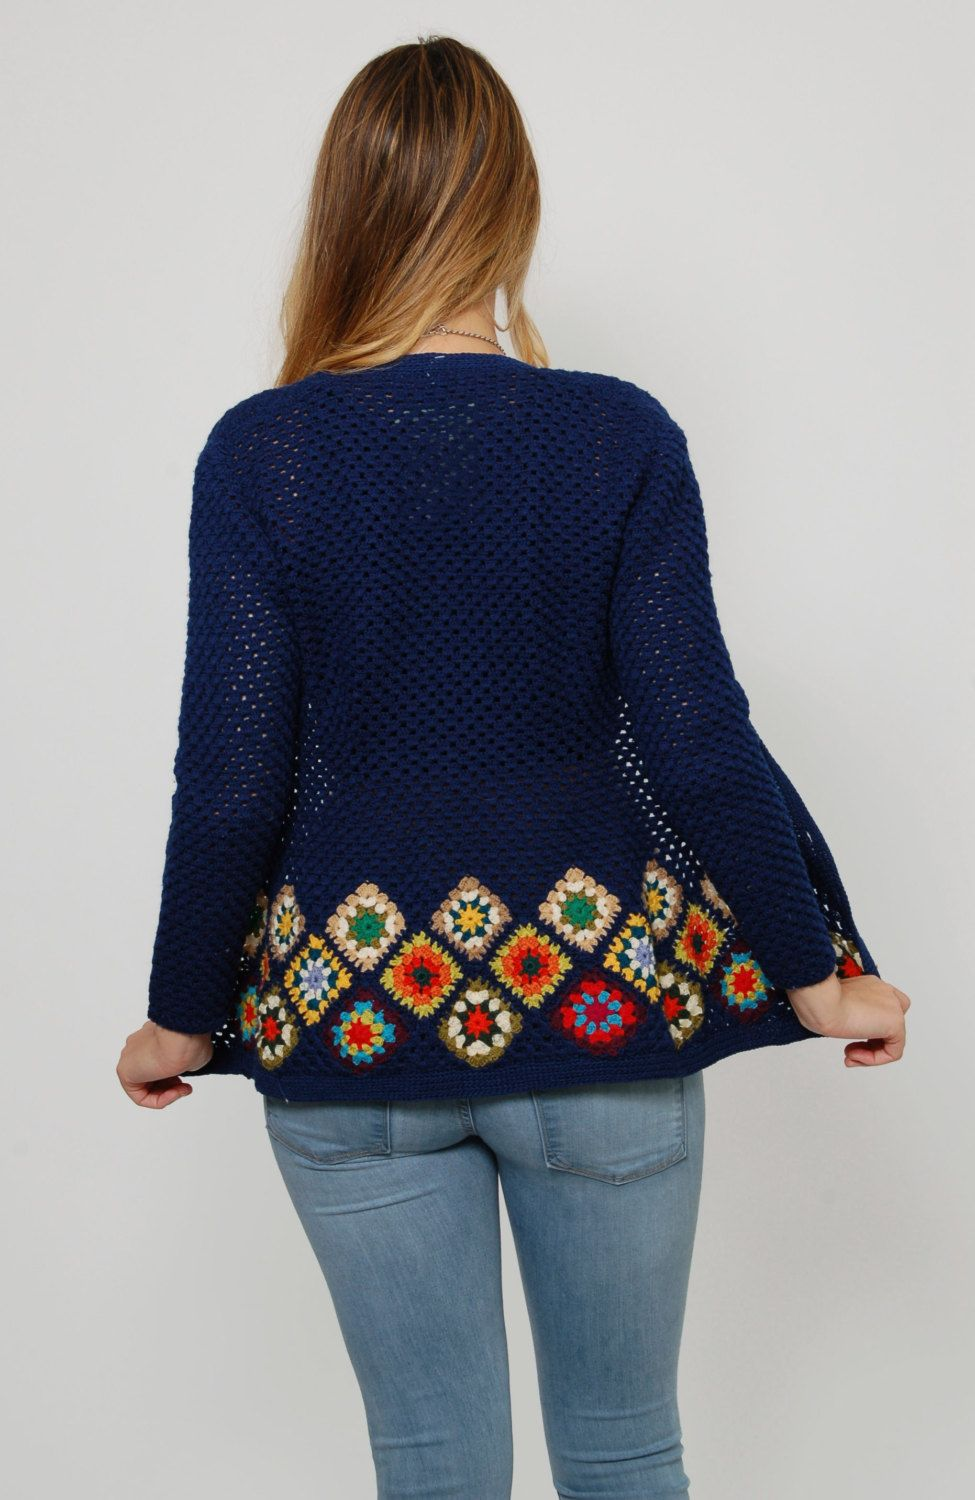 Vintage 70s GRANNY SQUARE Sweater Blue Knit Sweater Hippie ...